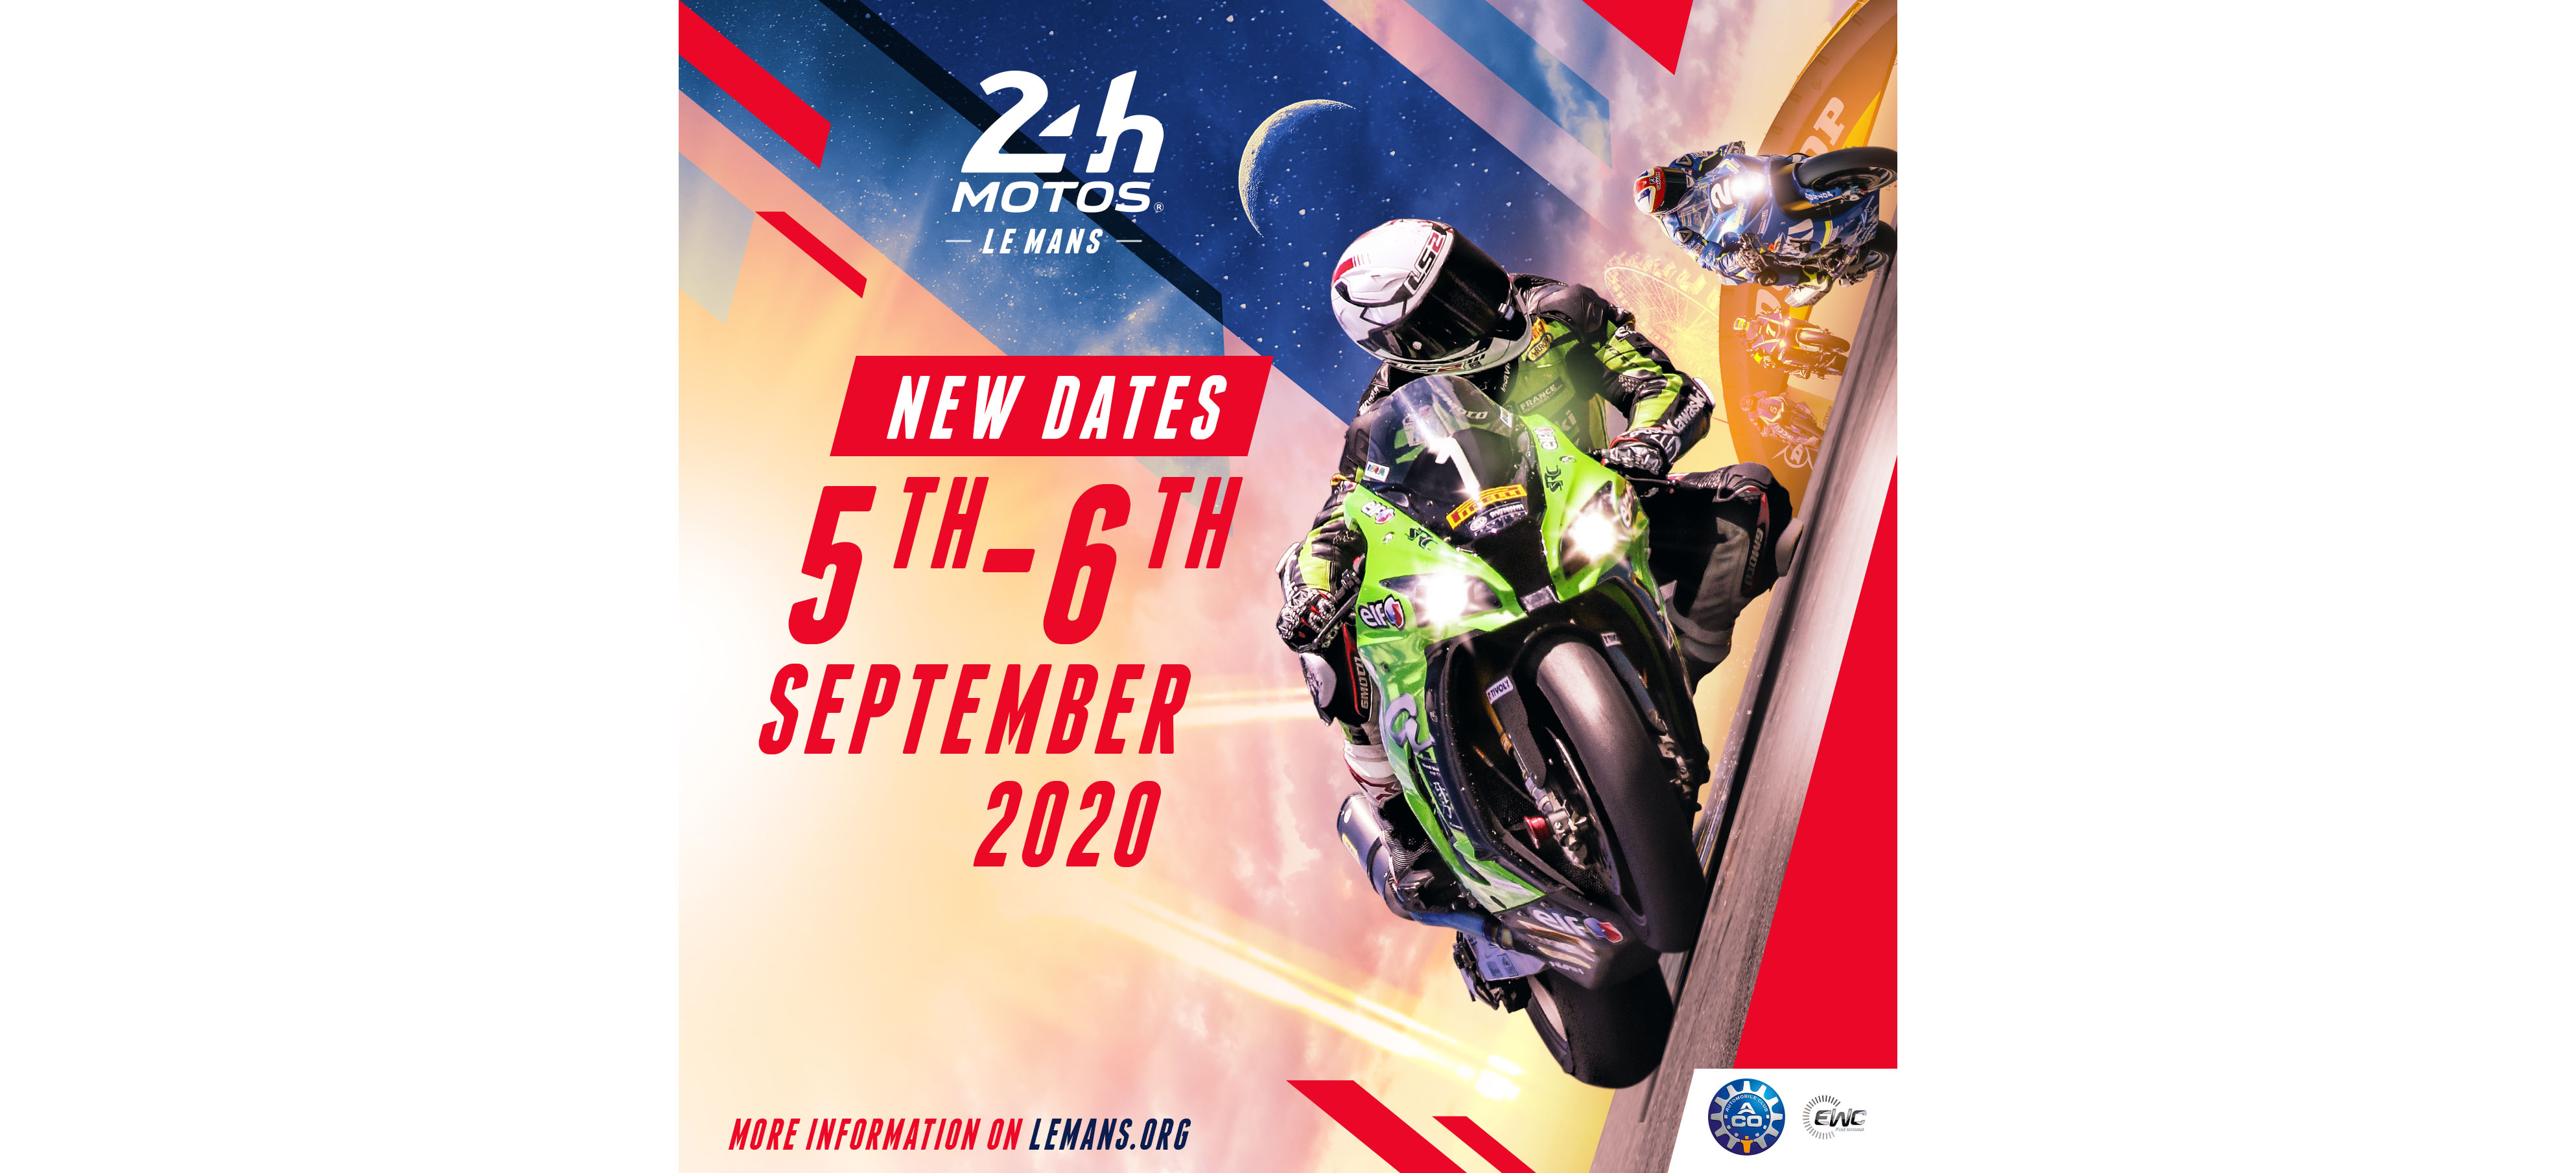 24 Heures Motos postponed to 5 and 6 September 2020